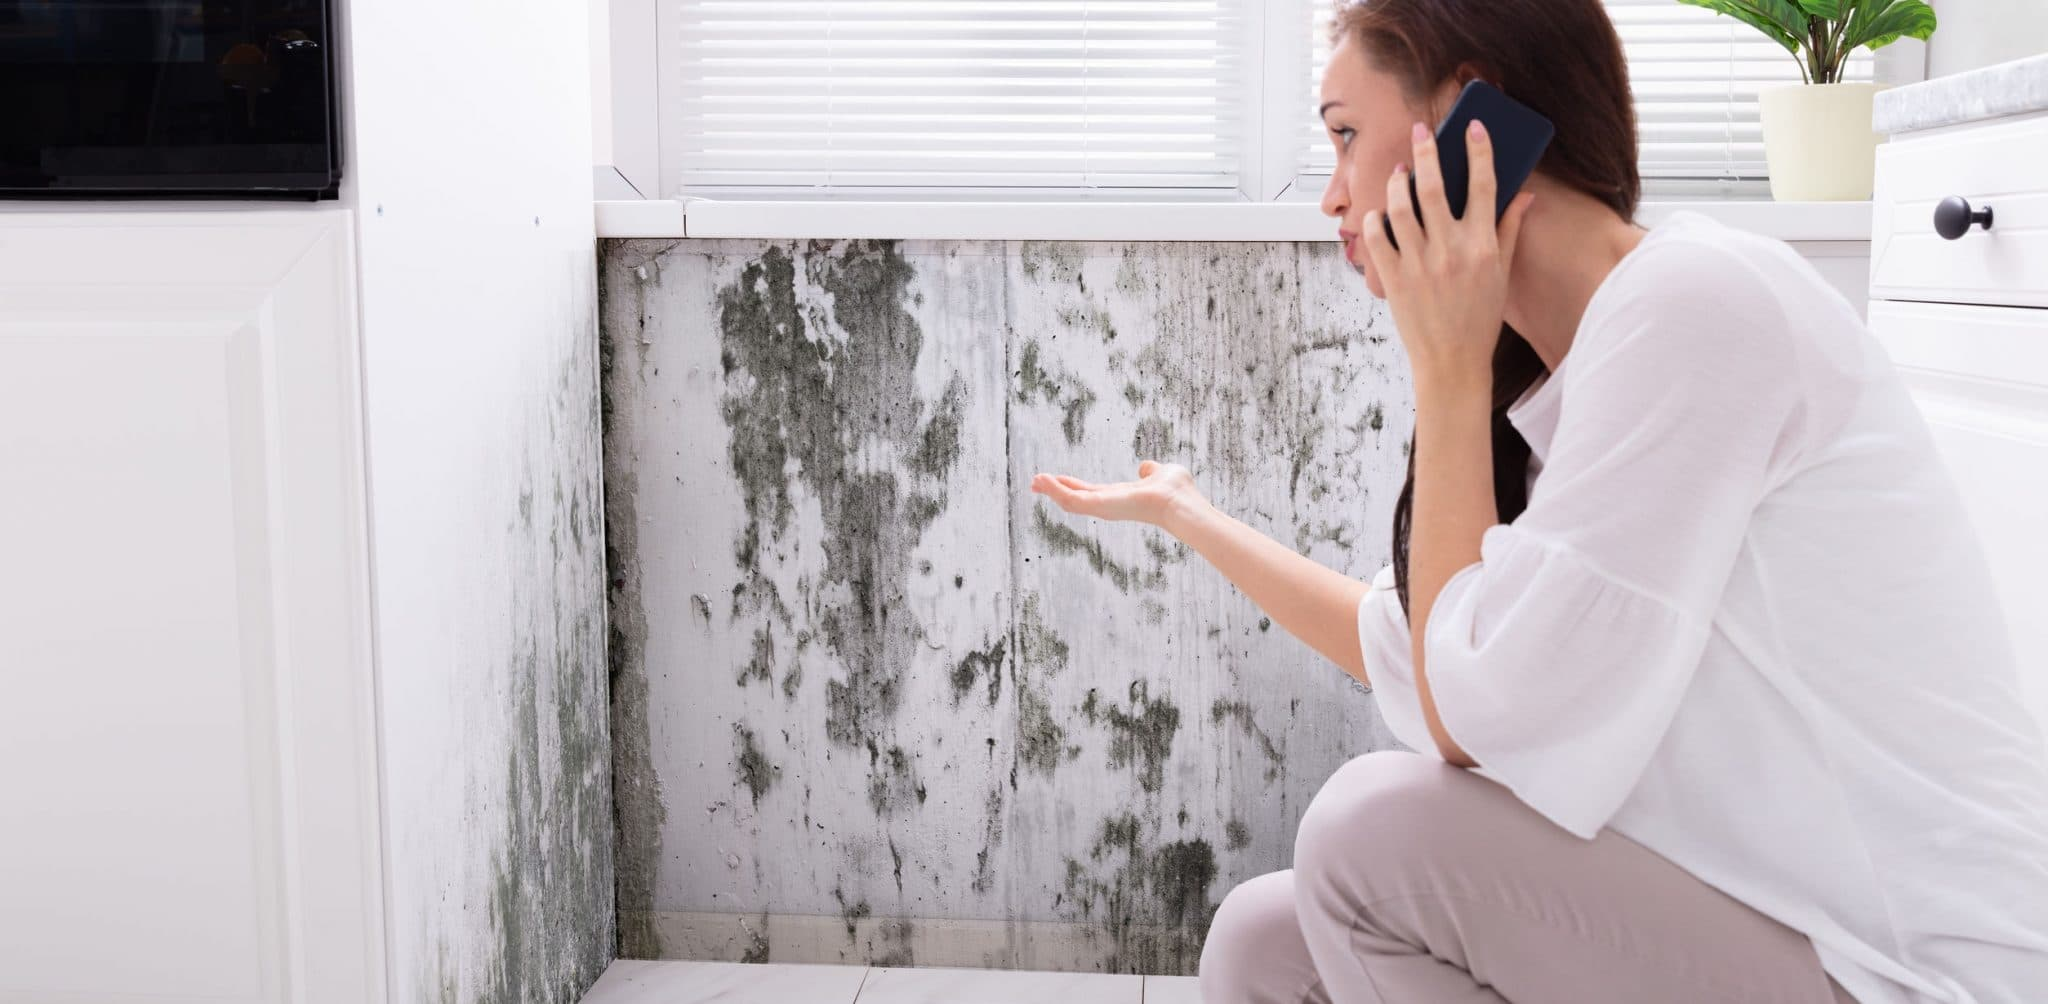 Woman on the phone in front of mold covered wall